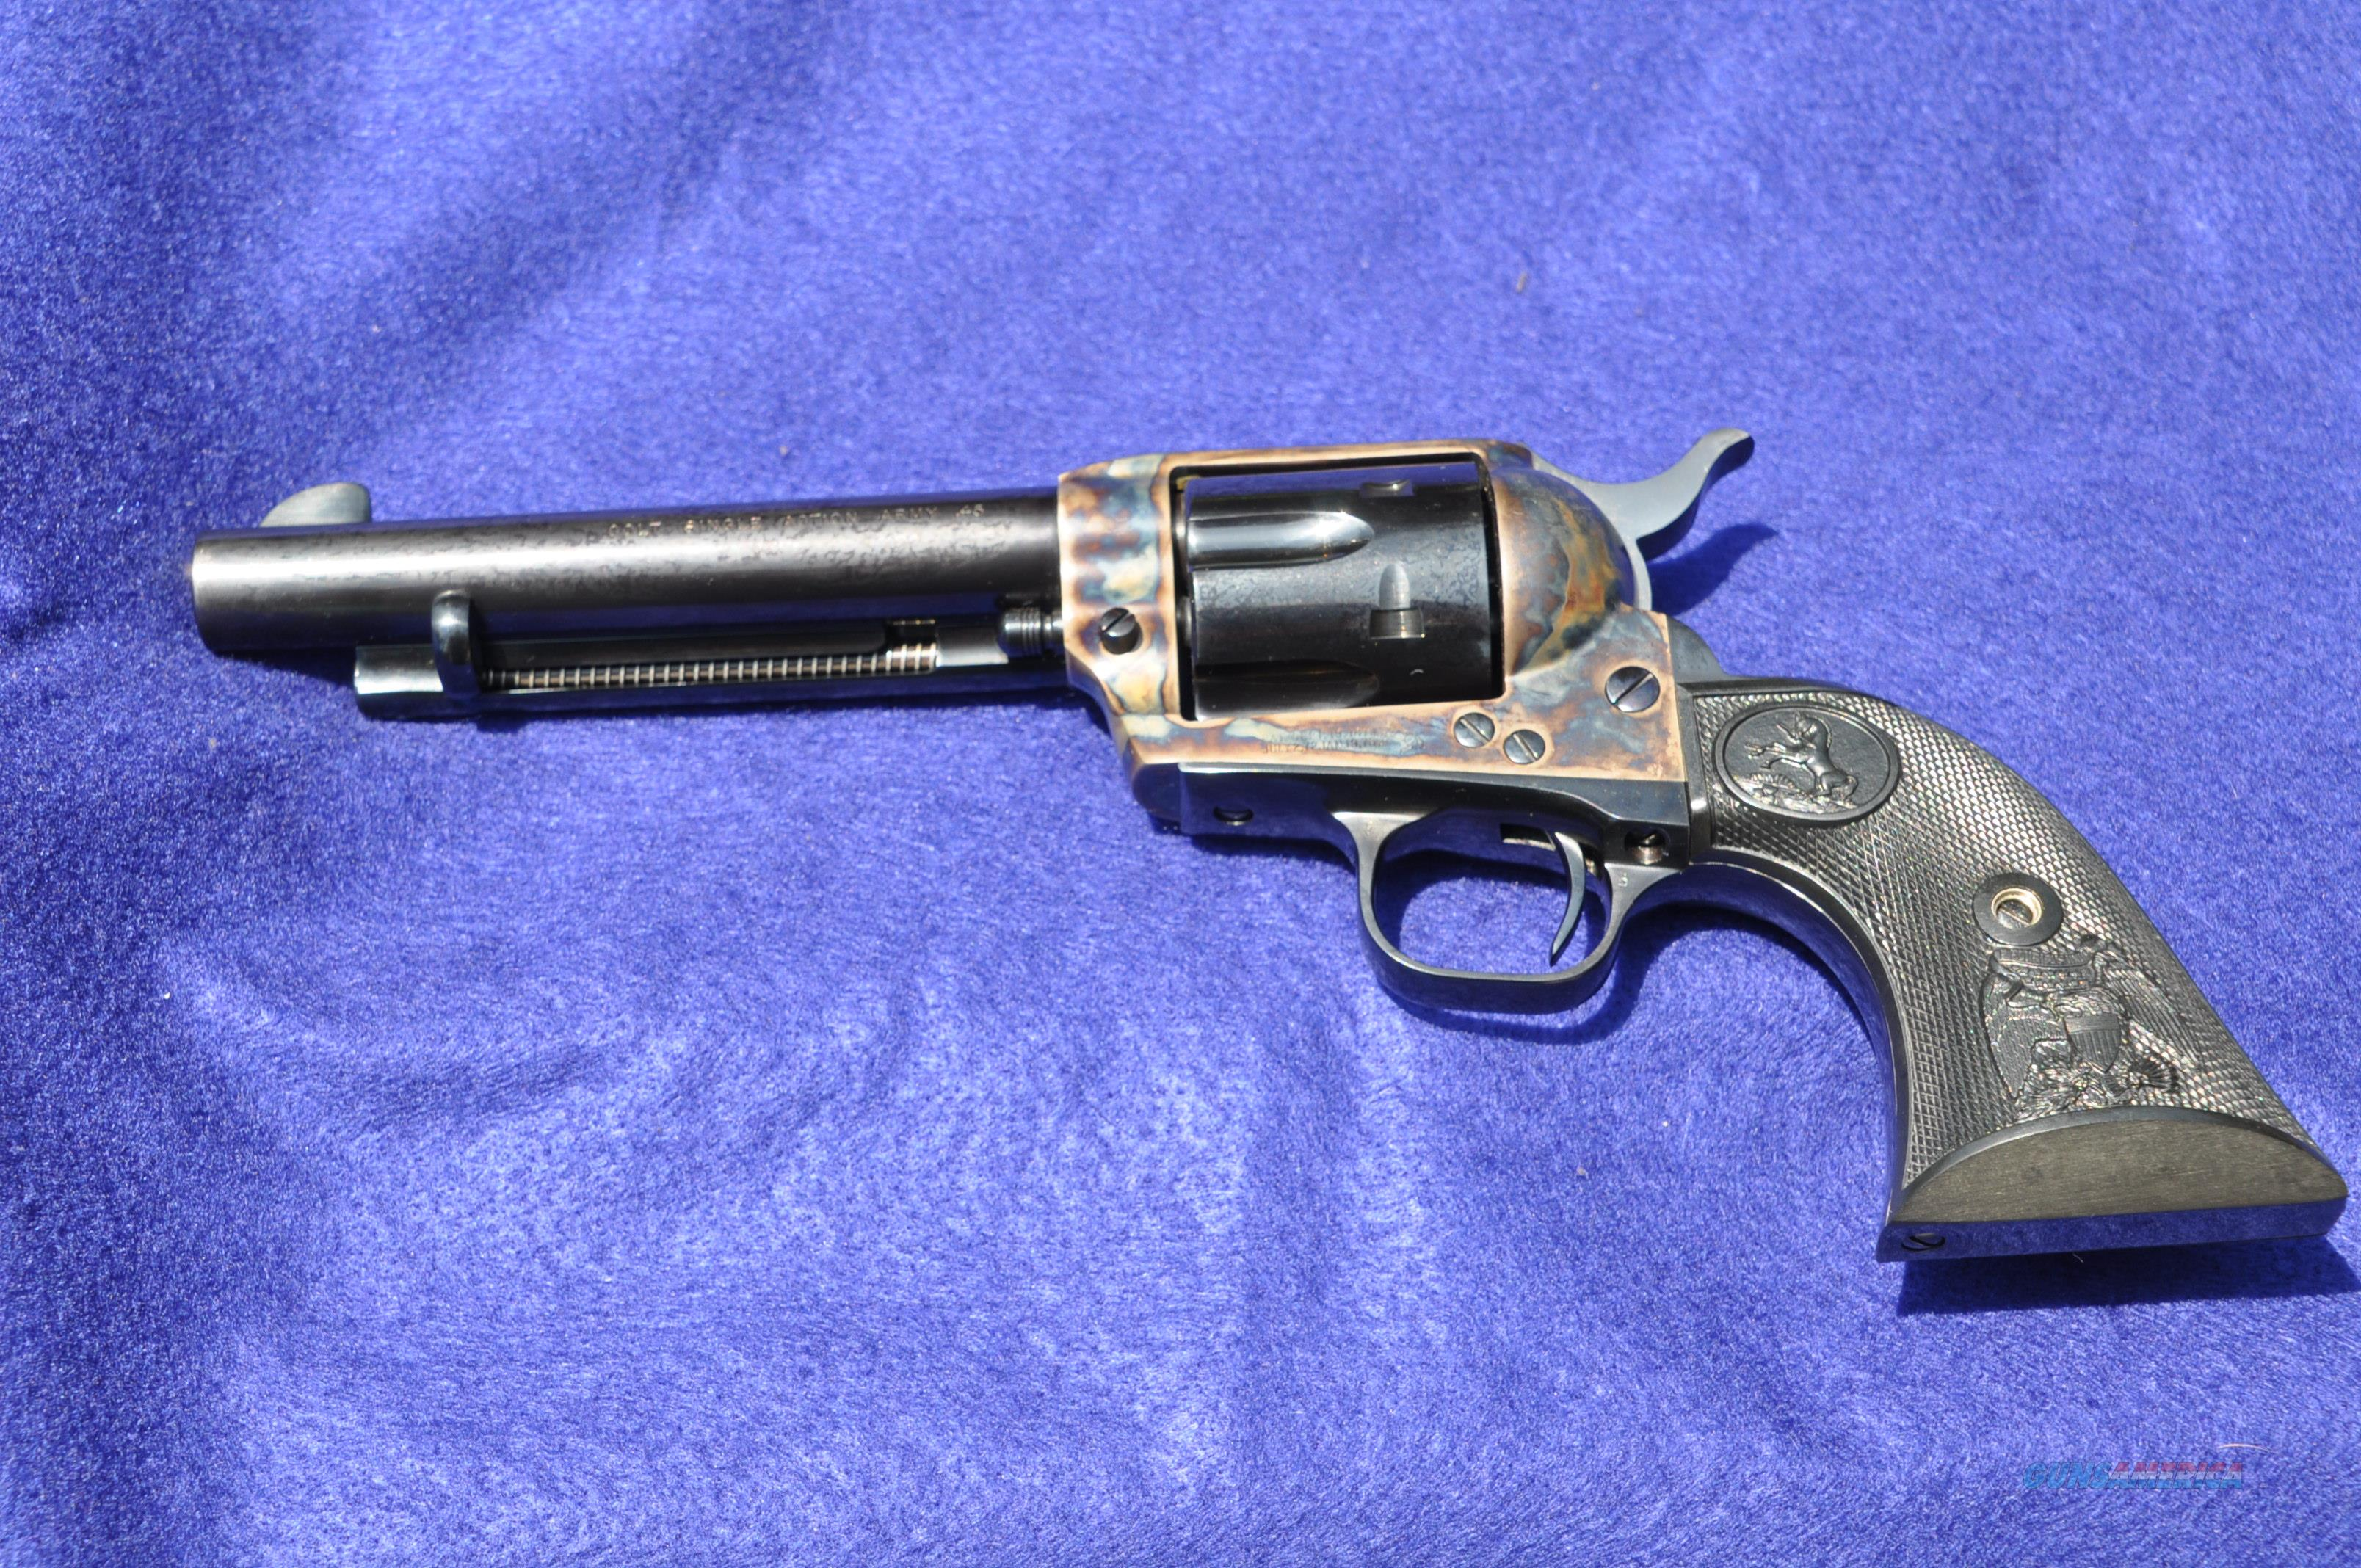 "COLT SAA Third Gen 5-1/2"" blue/color caseEagle grips NIB unfired, unturned   Guns > Pistols > Colt Single Action Revolvers - 3rd Gen."